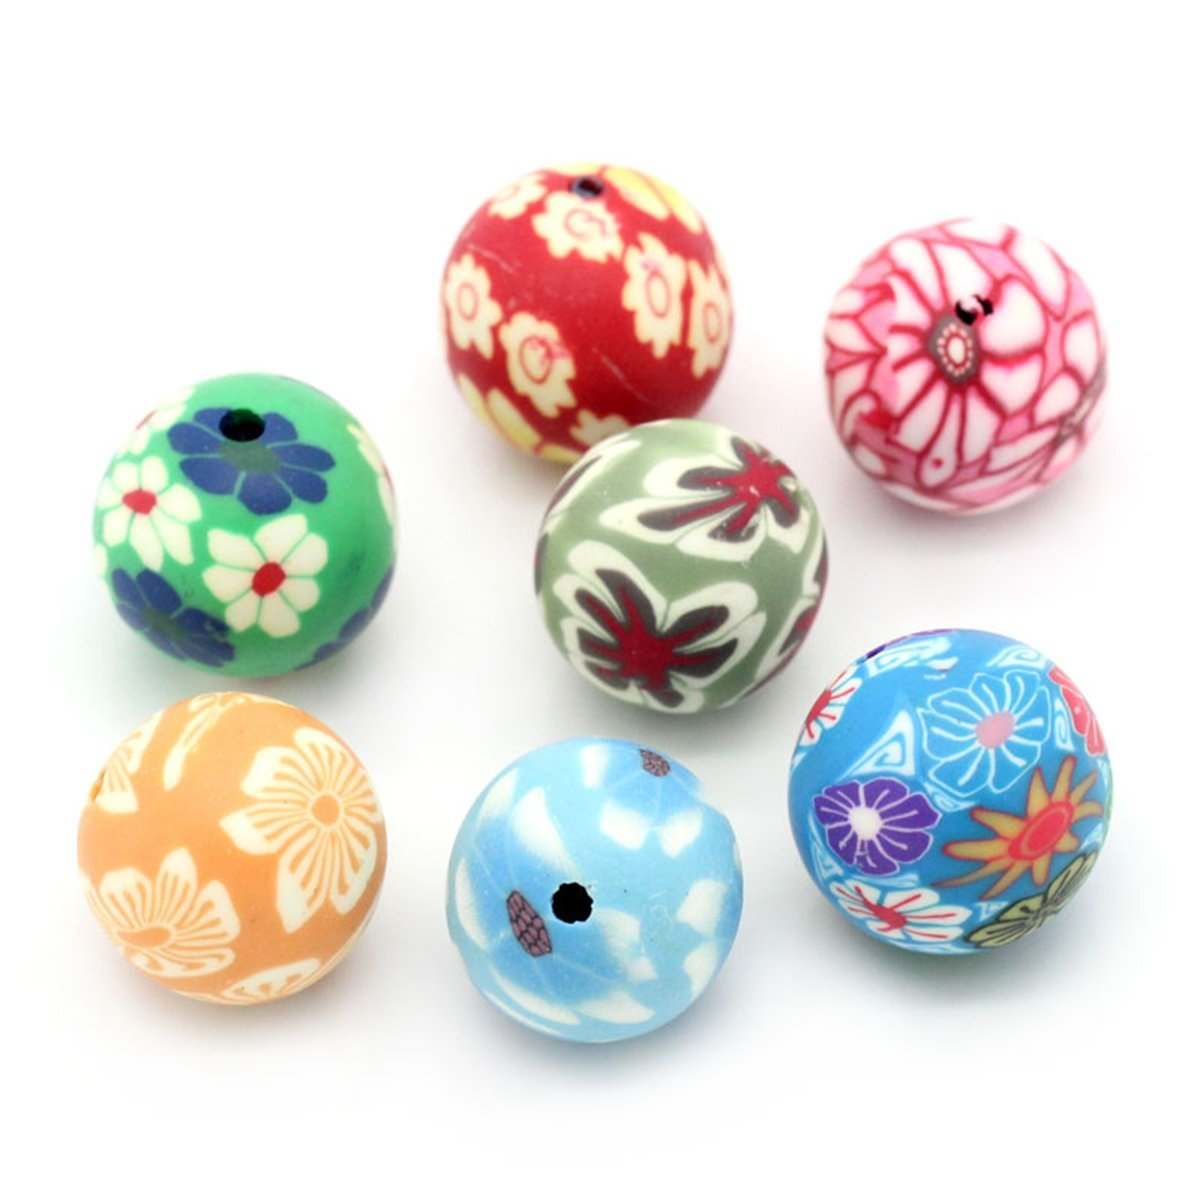 YF 30PCS Mixed Polymer Clay Pattern Printed Round Spacer Beads Charm for DIY Jewelry Making Findings 12-13mm